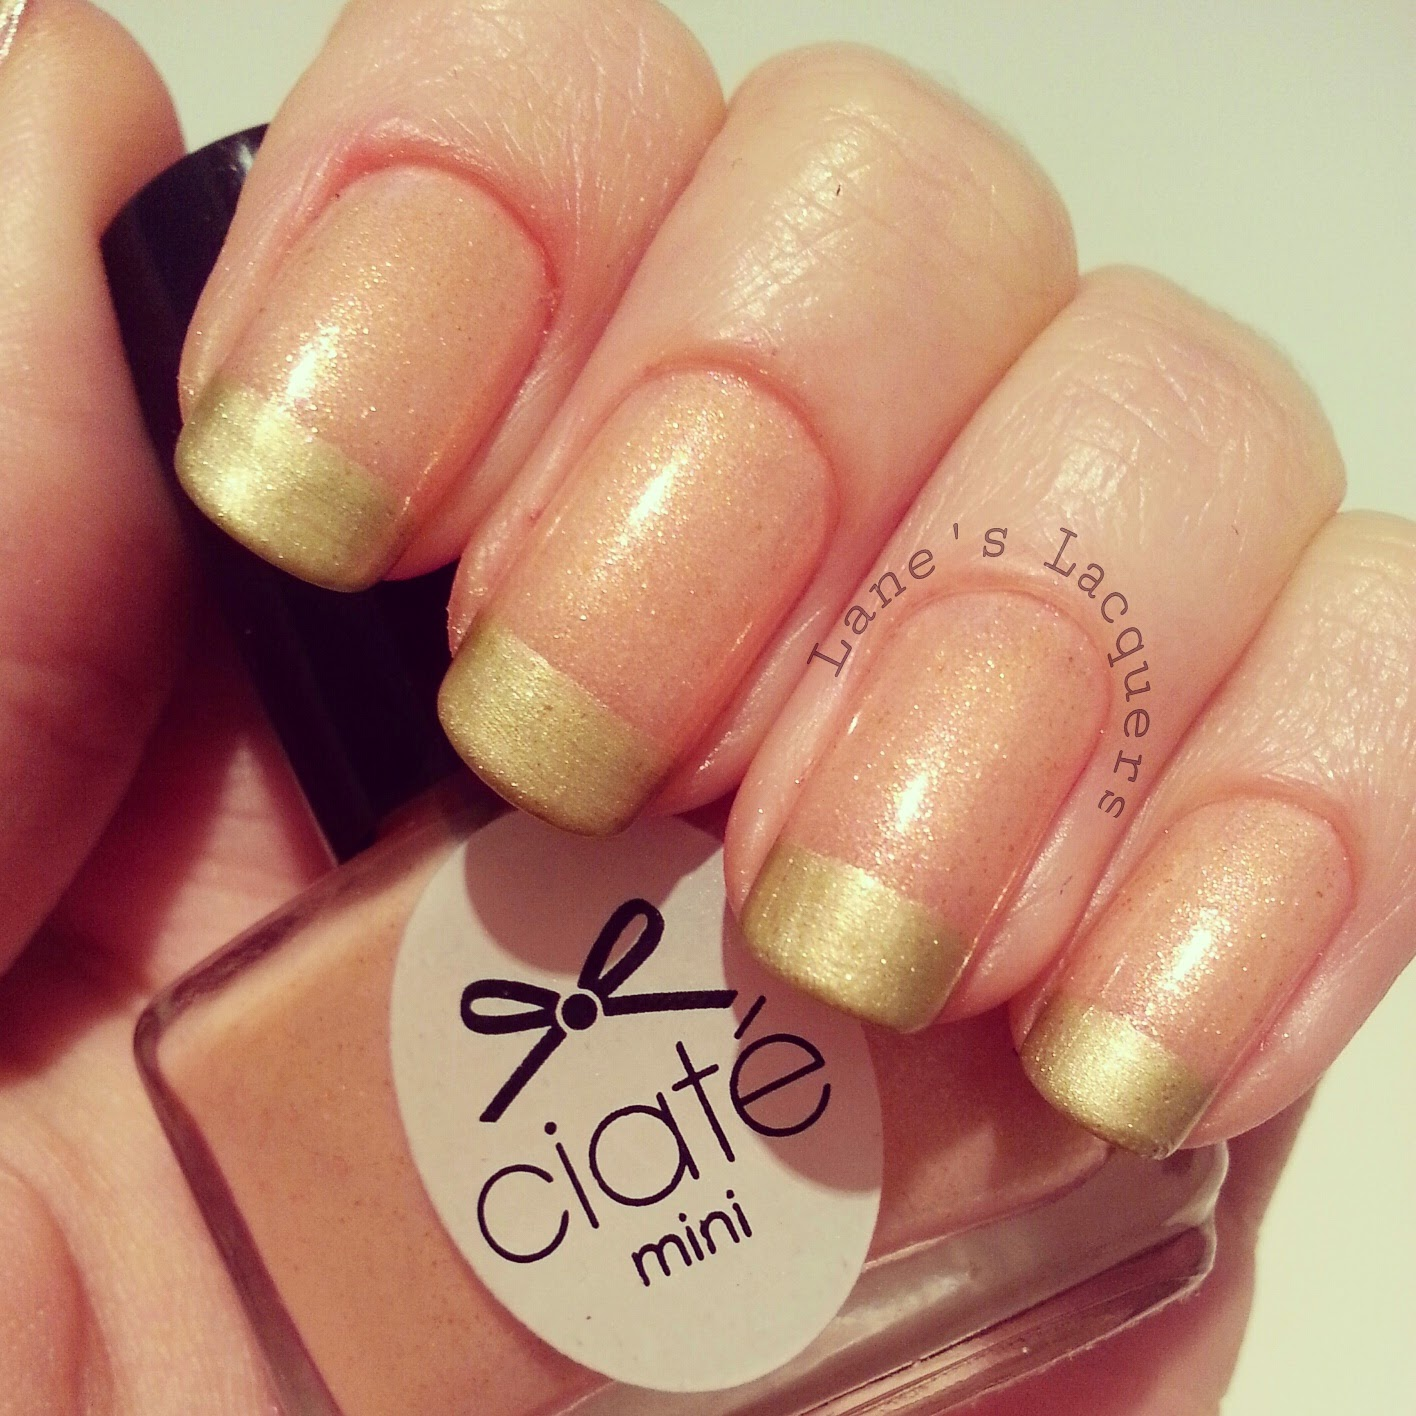 ciate-mini-mani-manor-sloaney-sweetie-white-glitter-nails (2)